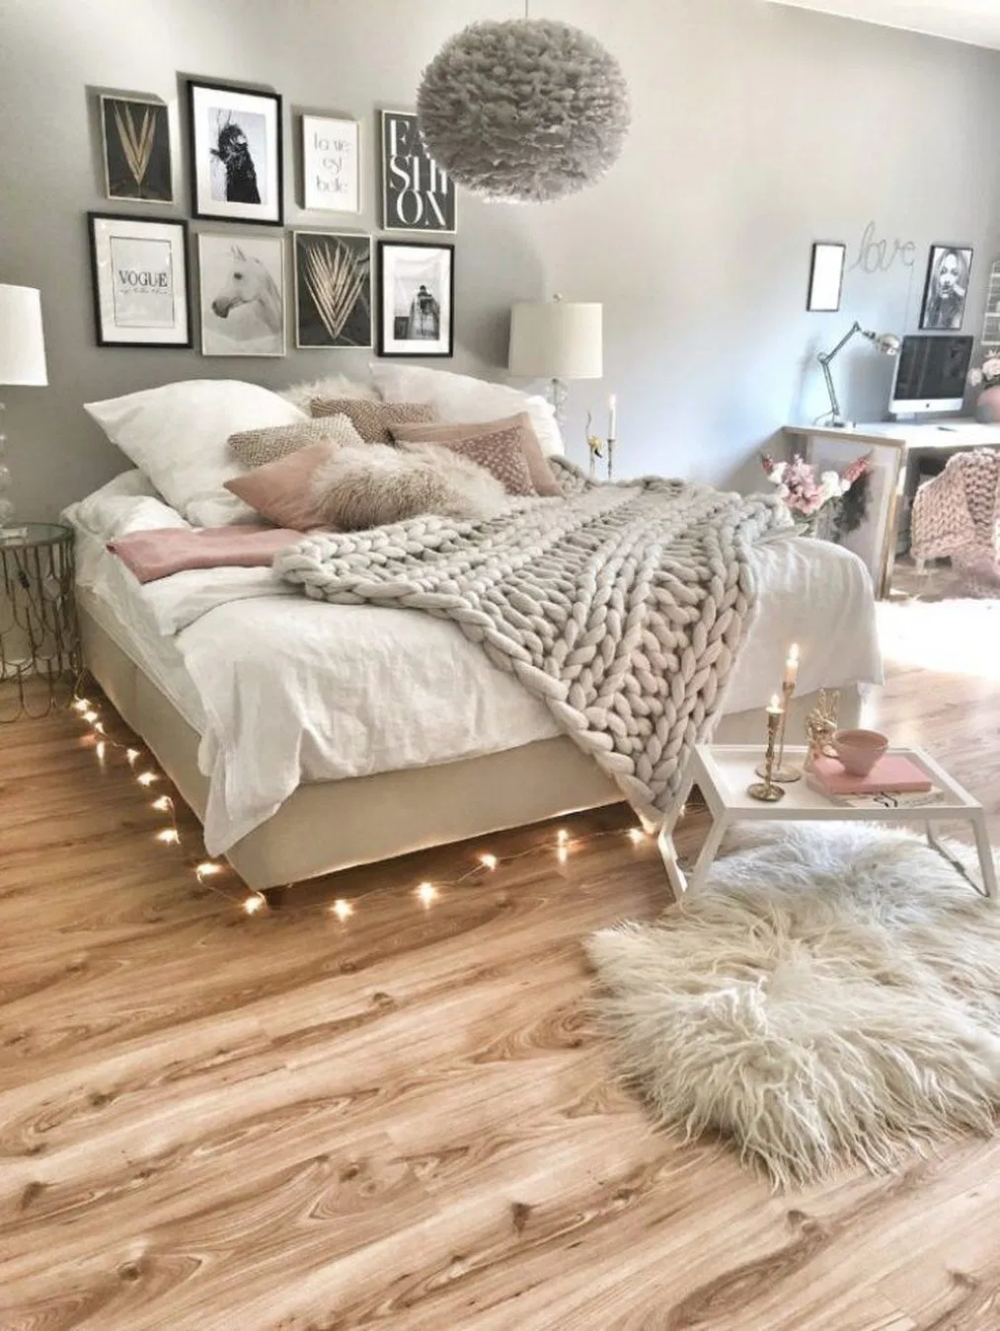 37 Five Elegant Rustic Bedroom Ideas That Will Give Your Rustic